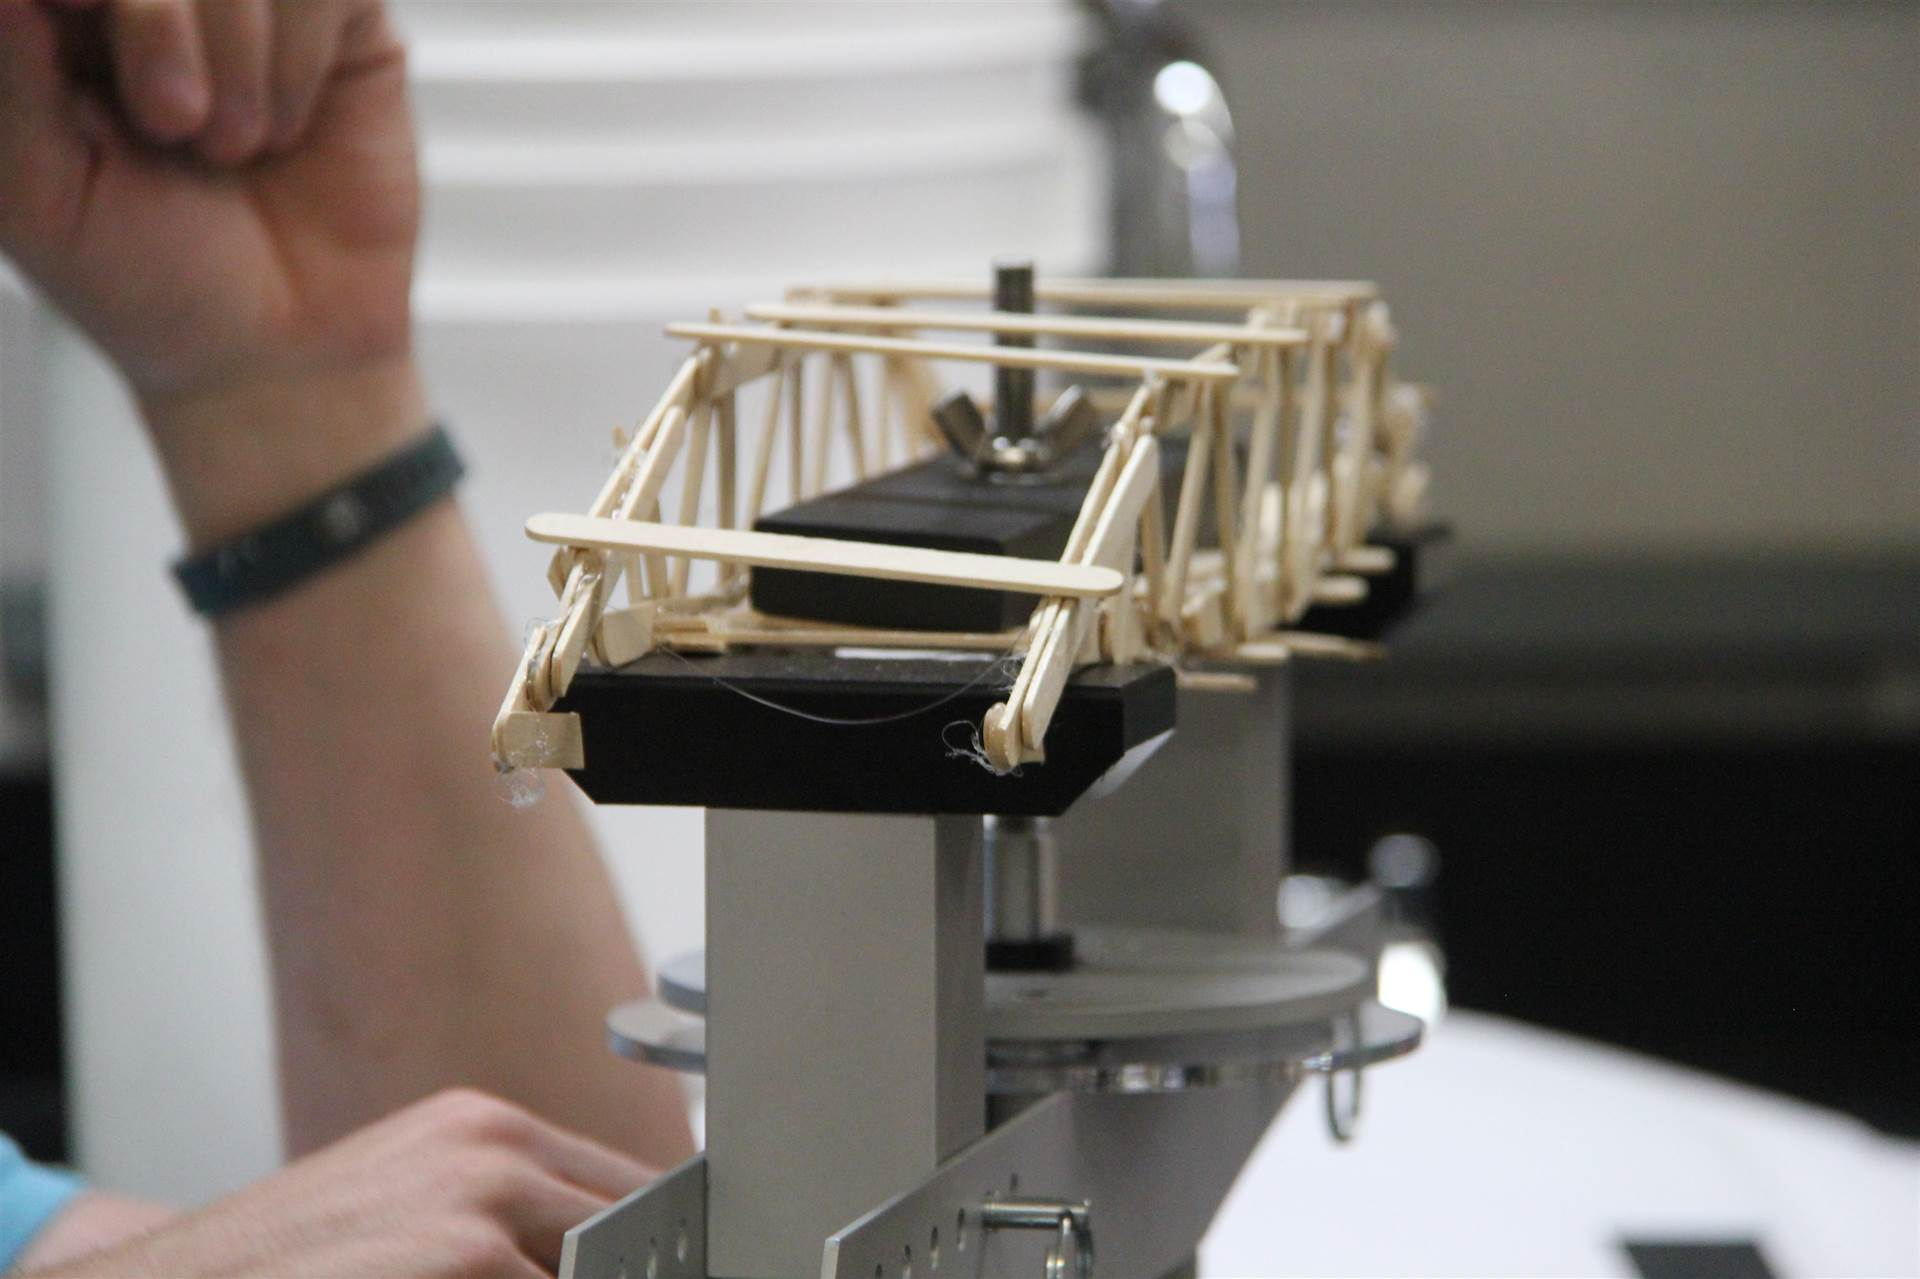 up close shot of bridge made of popsicle sticks going through test of how much weight it can hold